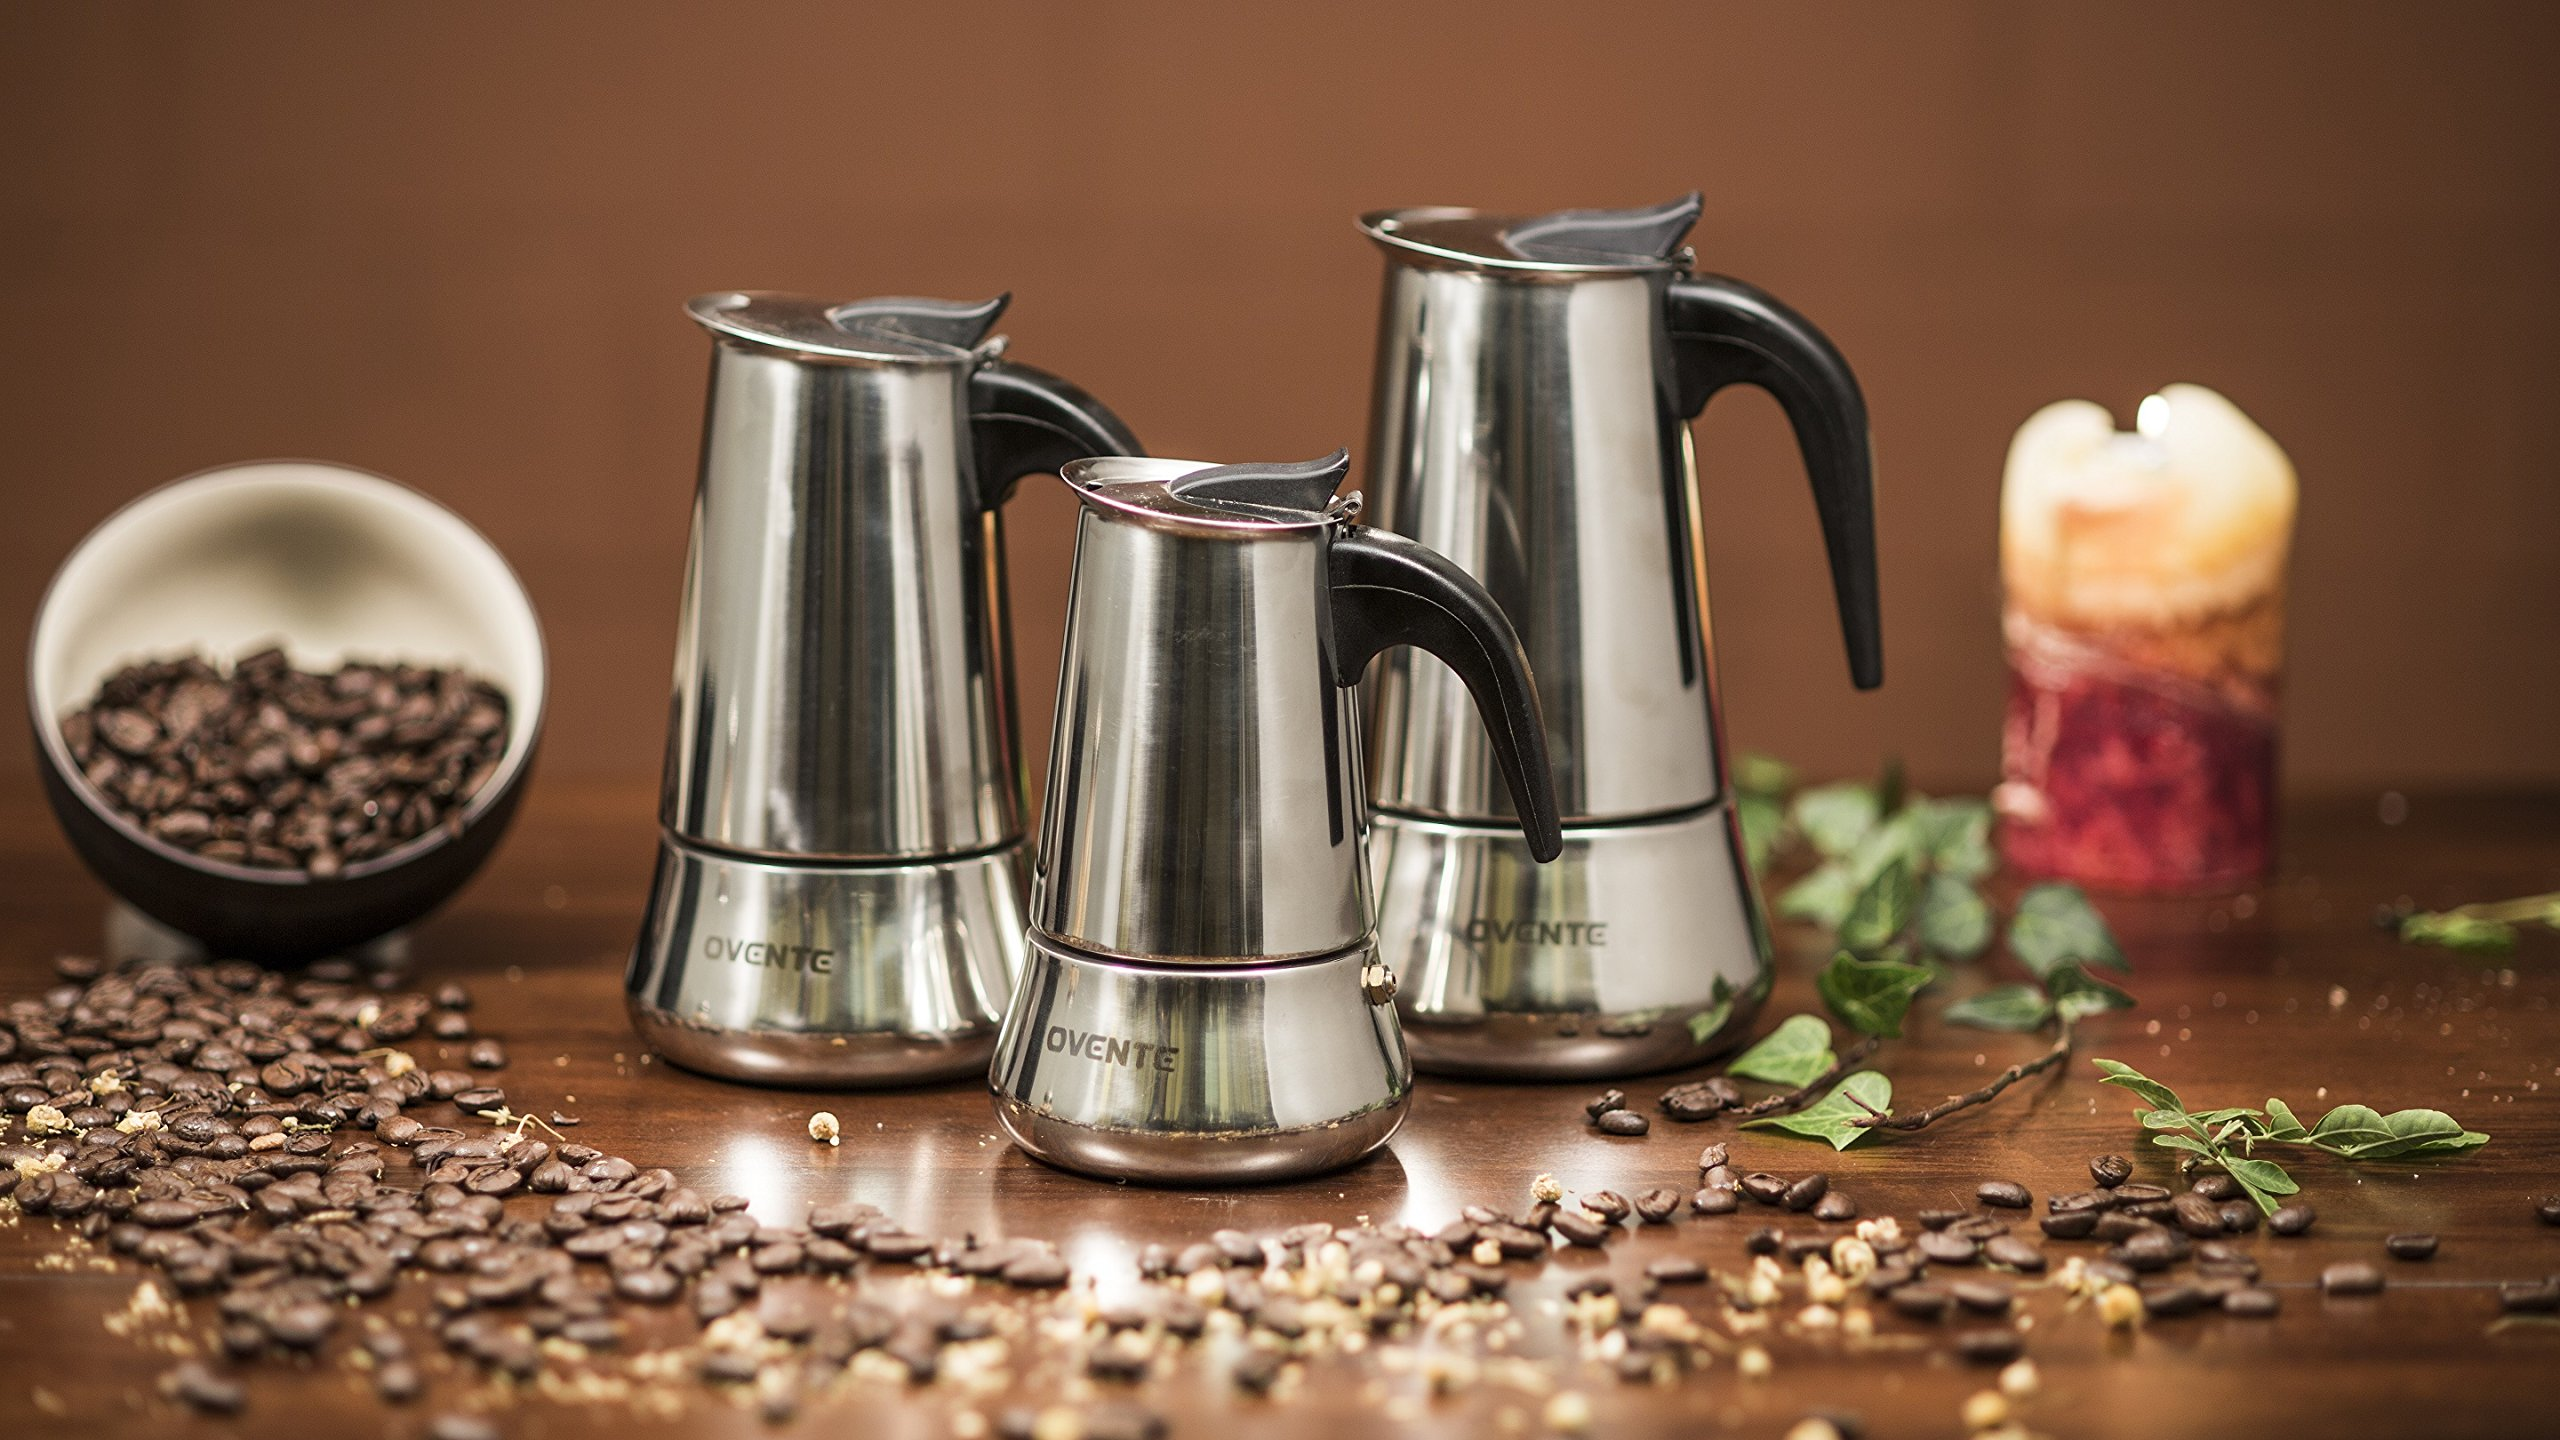 Ovente MPE09 9-Cup Stovetop Stainless Steel Espresso Maker